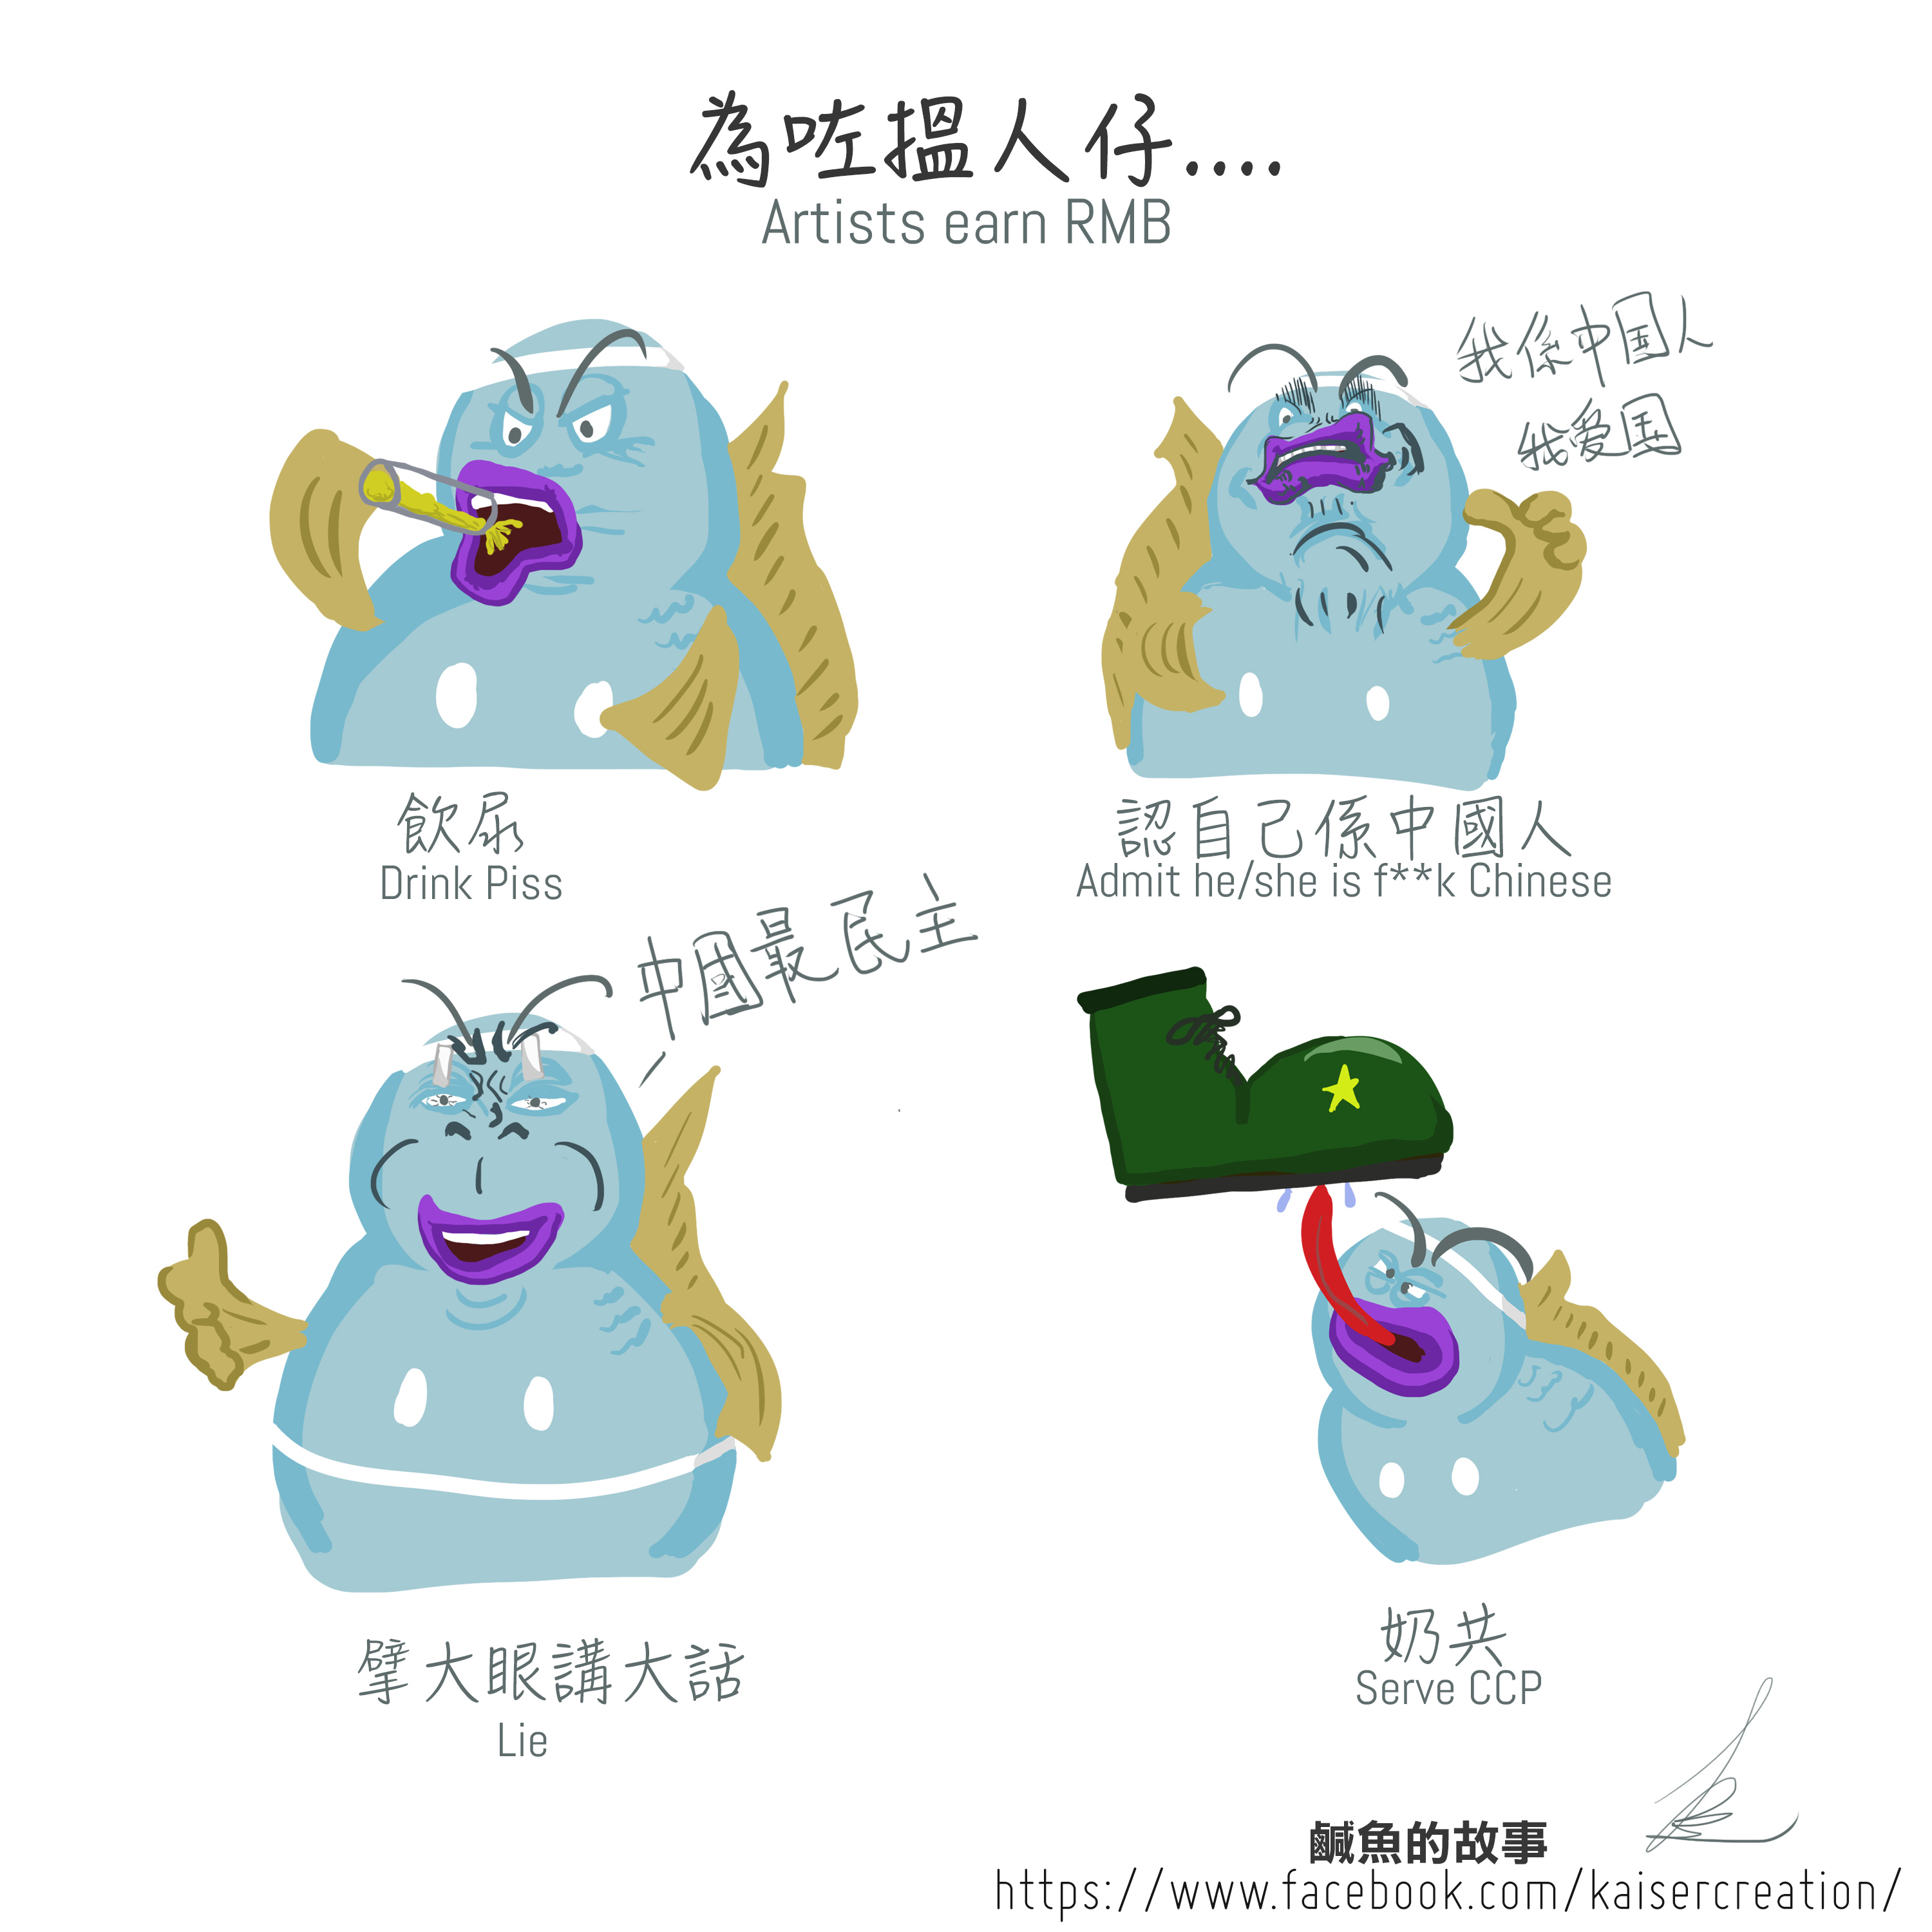 8 earn money from China